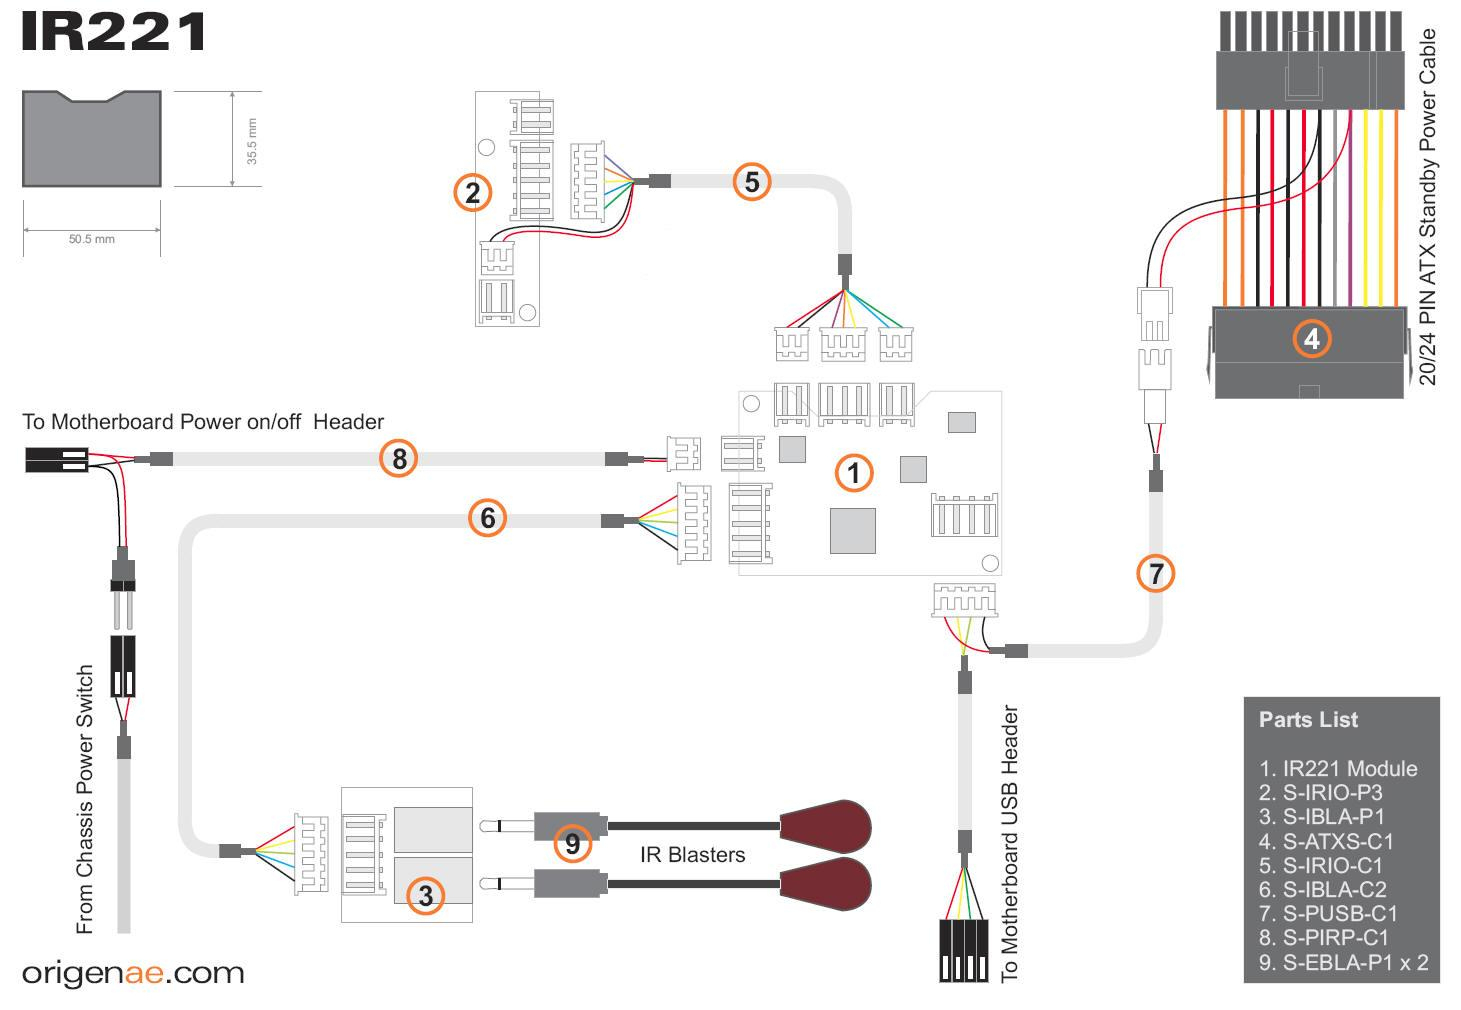 Usb To Db9 Cable Wiring Diagram | Wiring Diagram - Modem Usb To Db9 Wiring Diagram